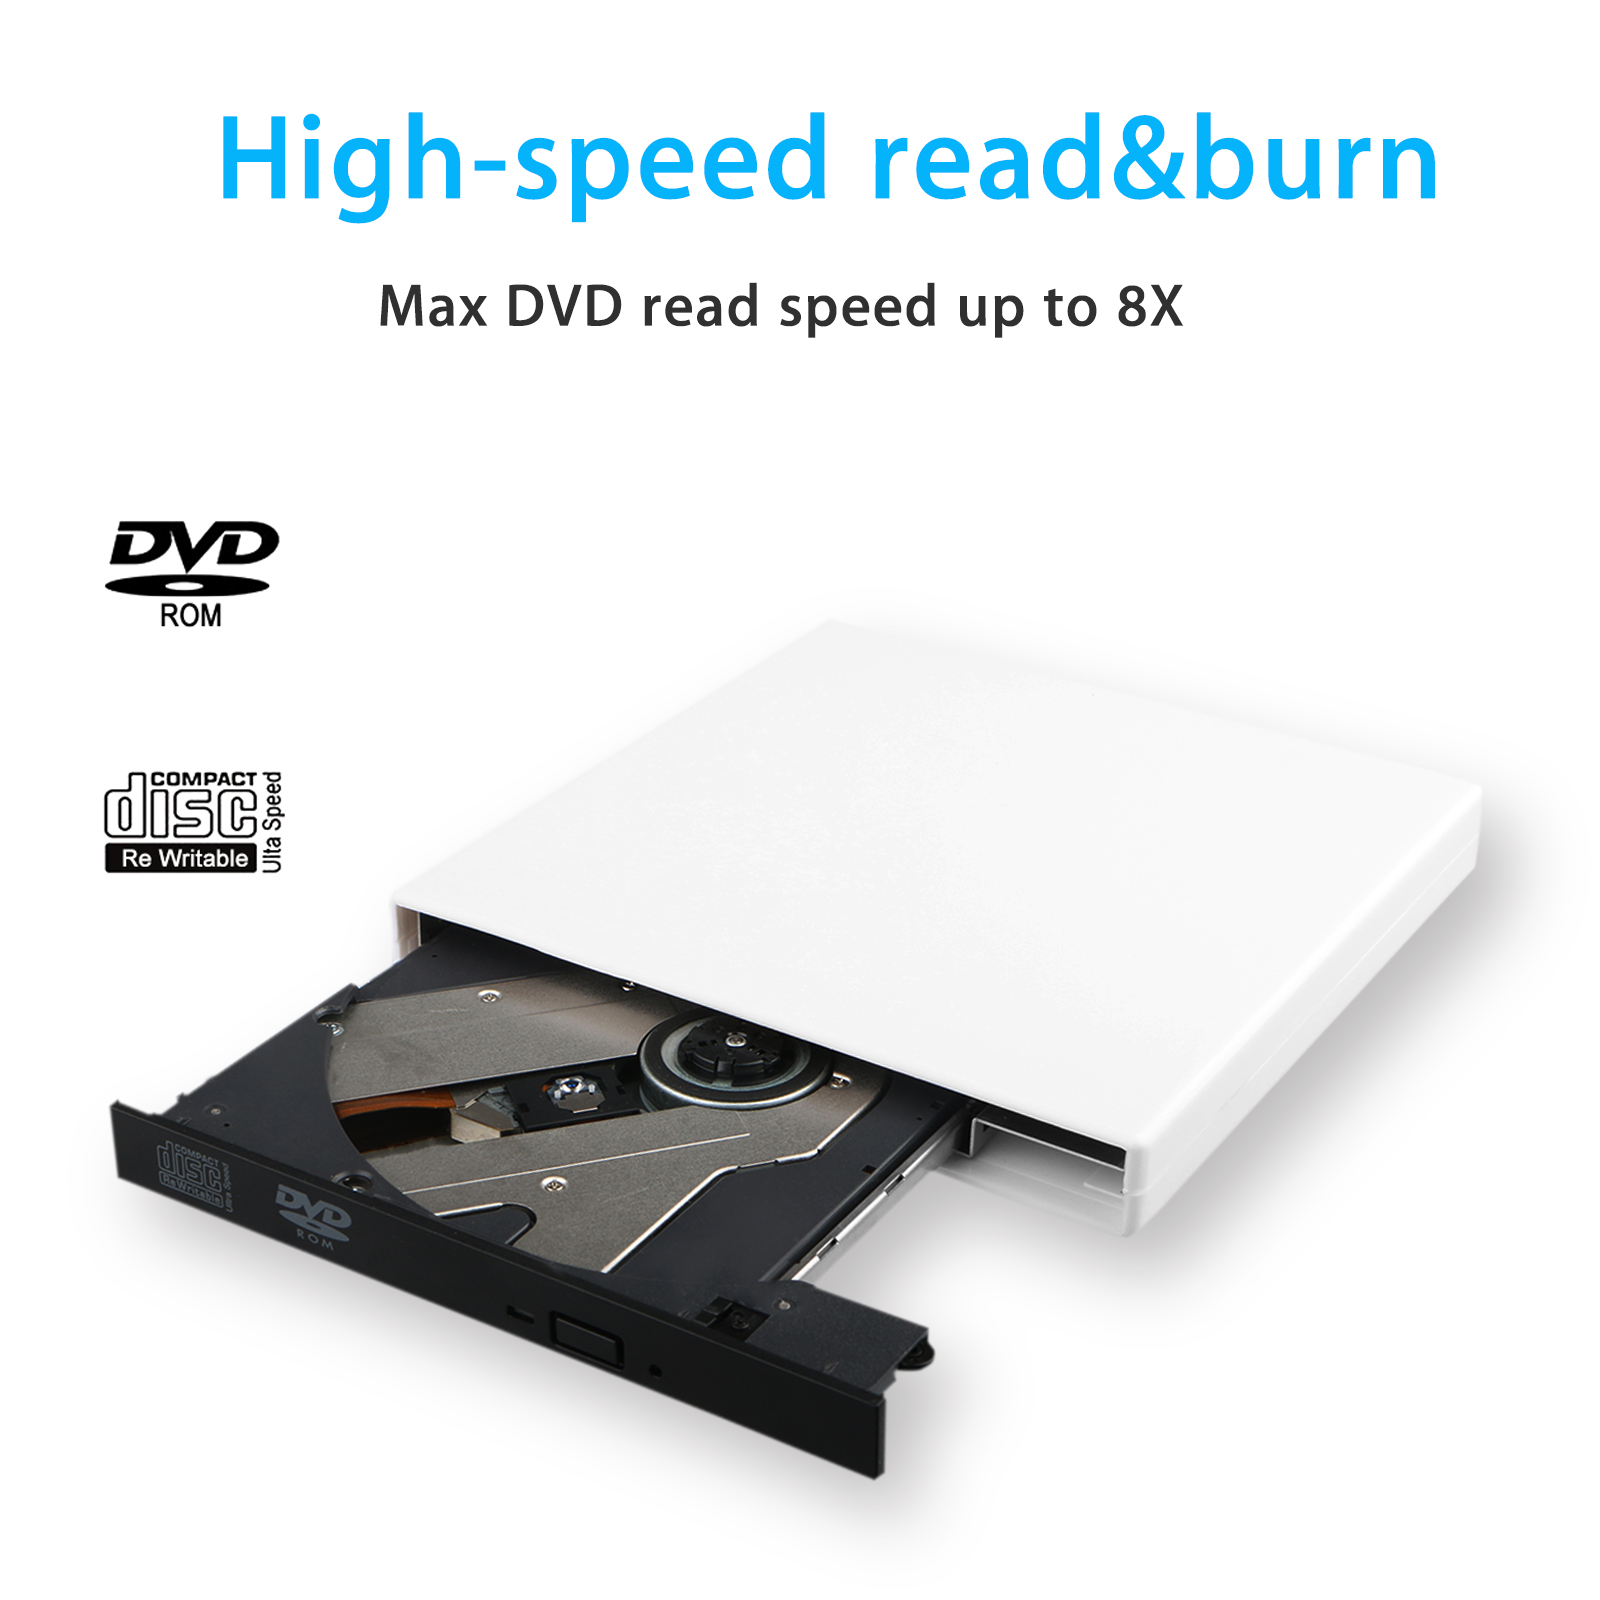 Tsv Usb 20 External Dvd Rom Combo Cd Rw Burner Drive With M Tech Two Cables For Pc Laptop